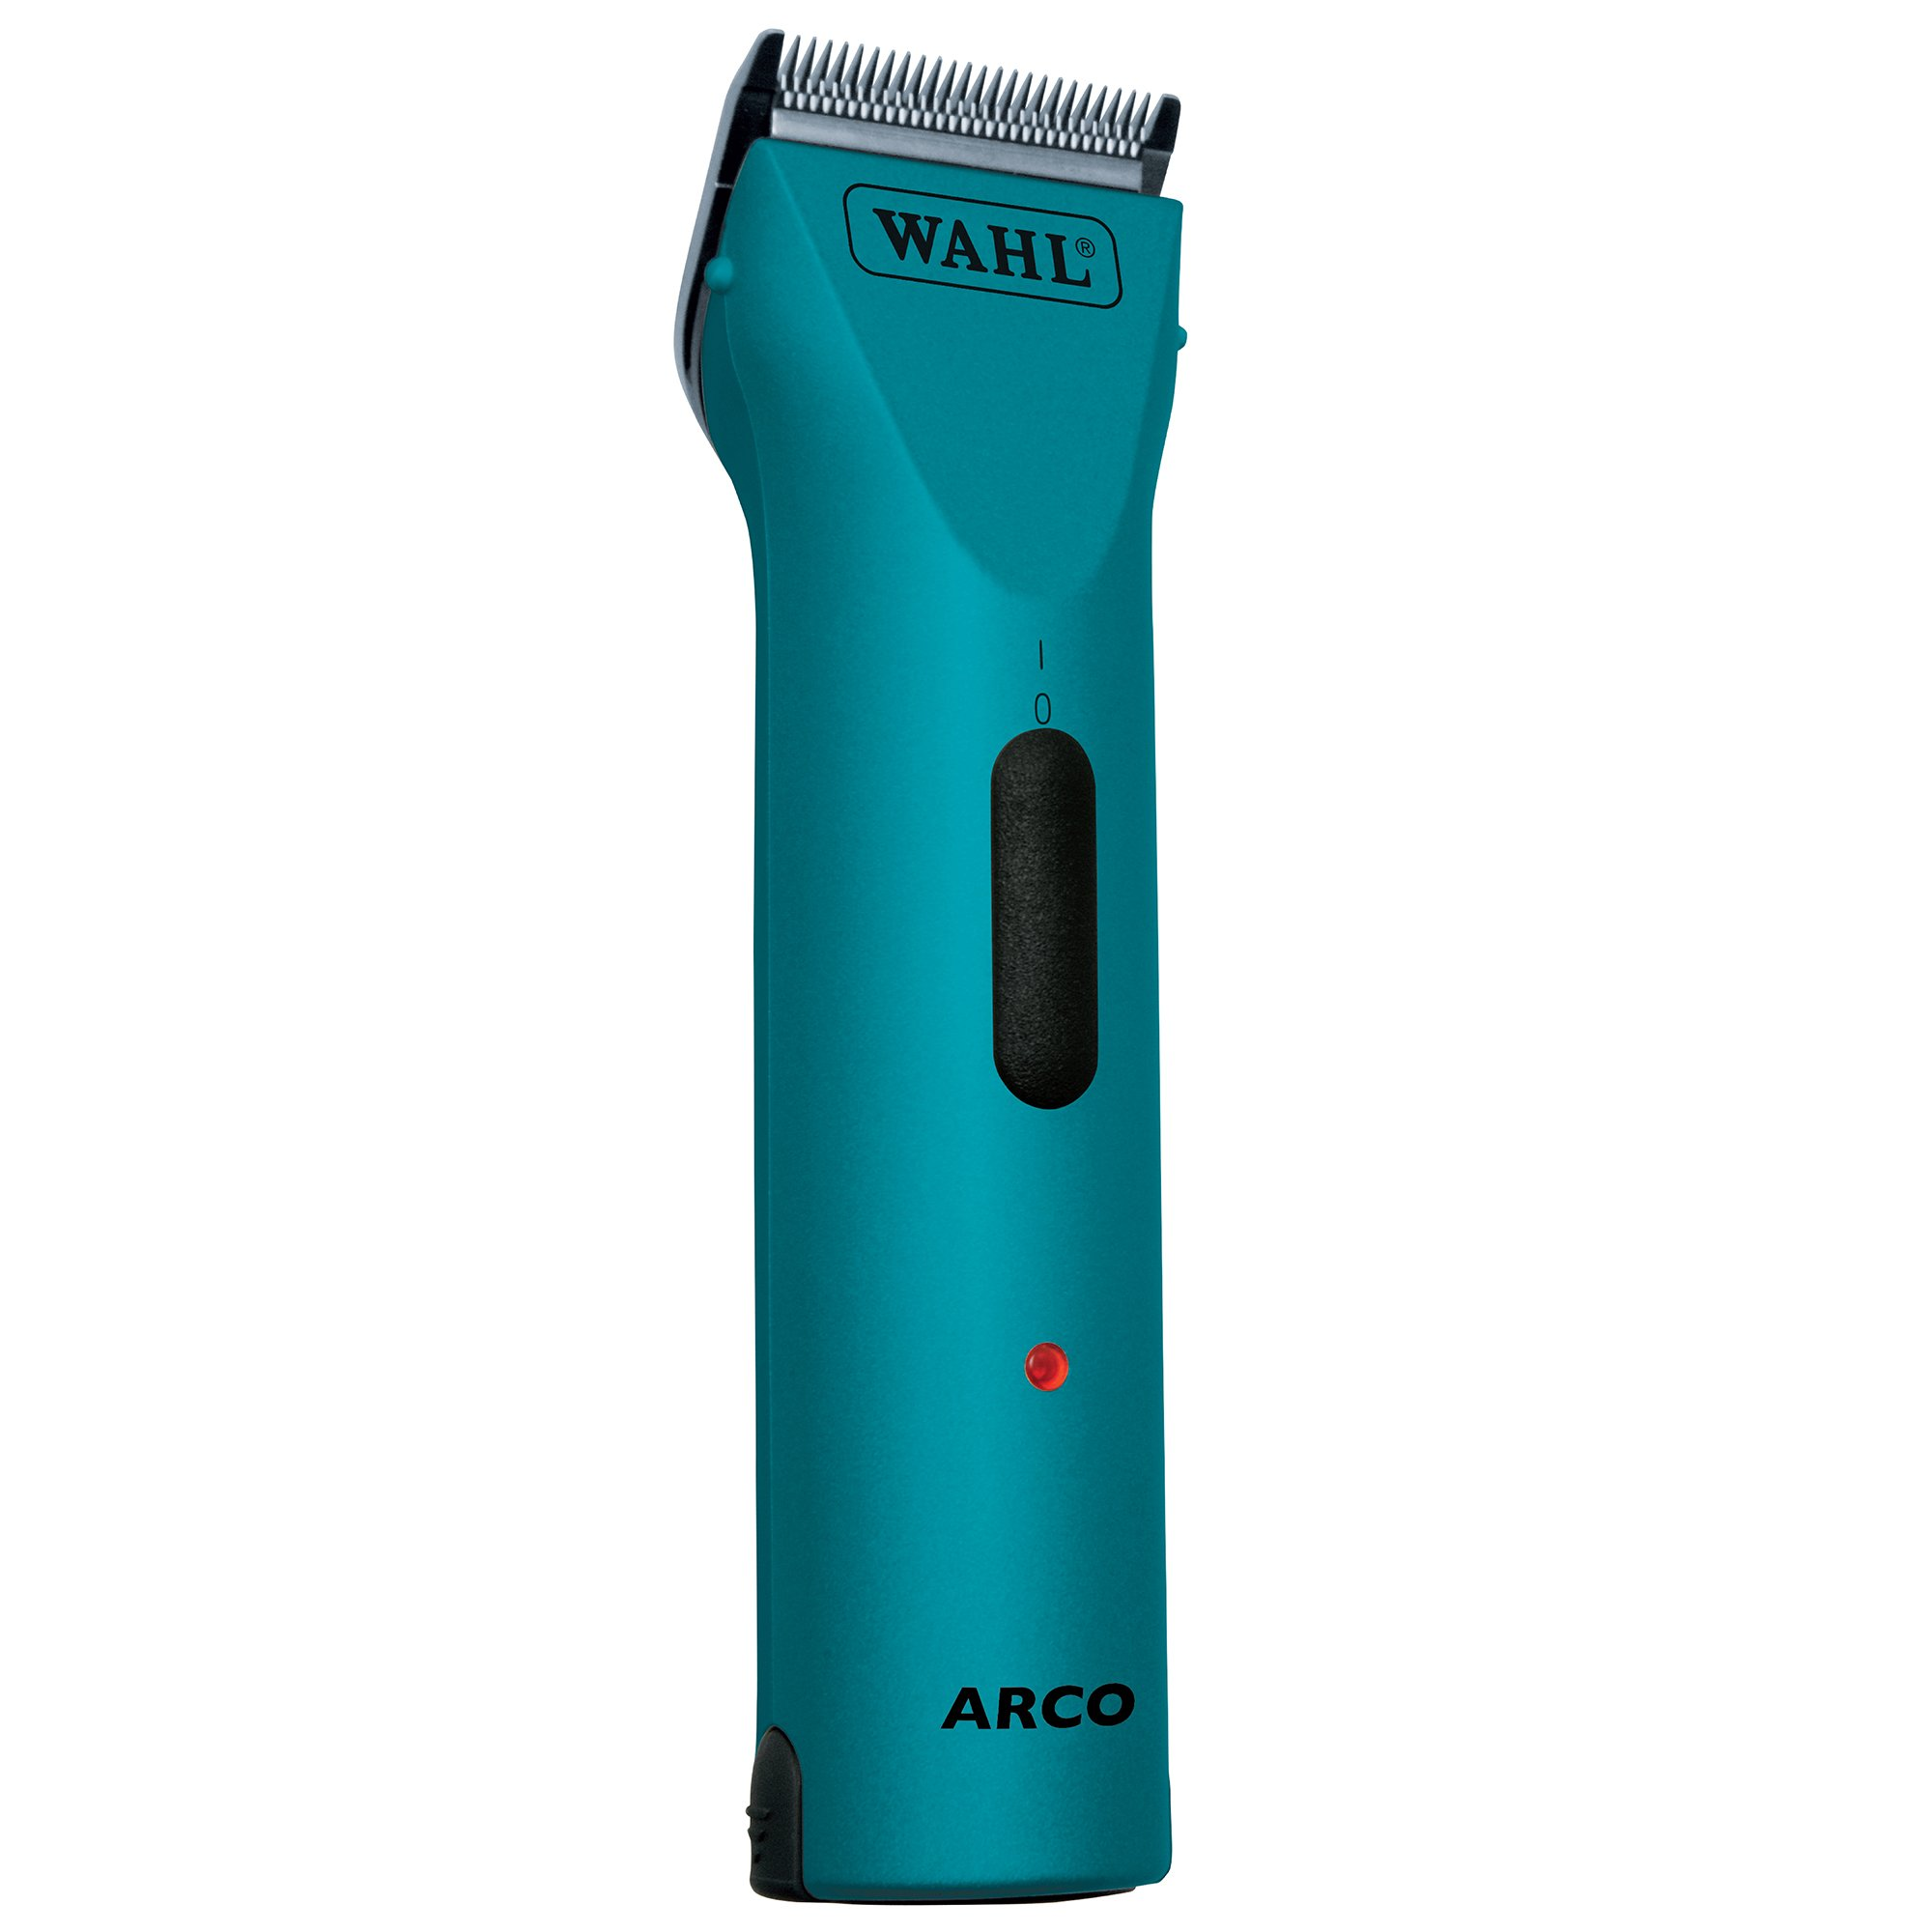 Wahl Professional Animal Arco Veterinary Clipper Kit for Pets, Dogs, Cats, and Horses with #45 Non-Adjustable Blade (#8786-1101) by Wahl Professional Animal